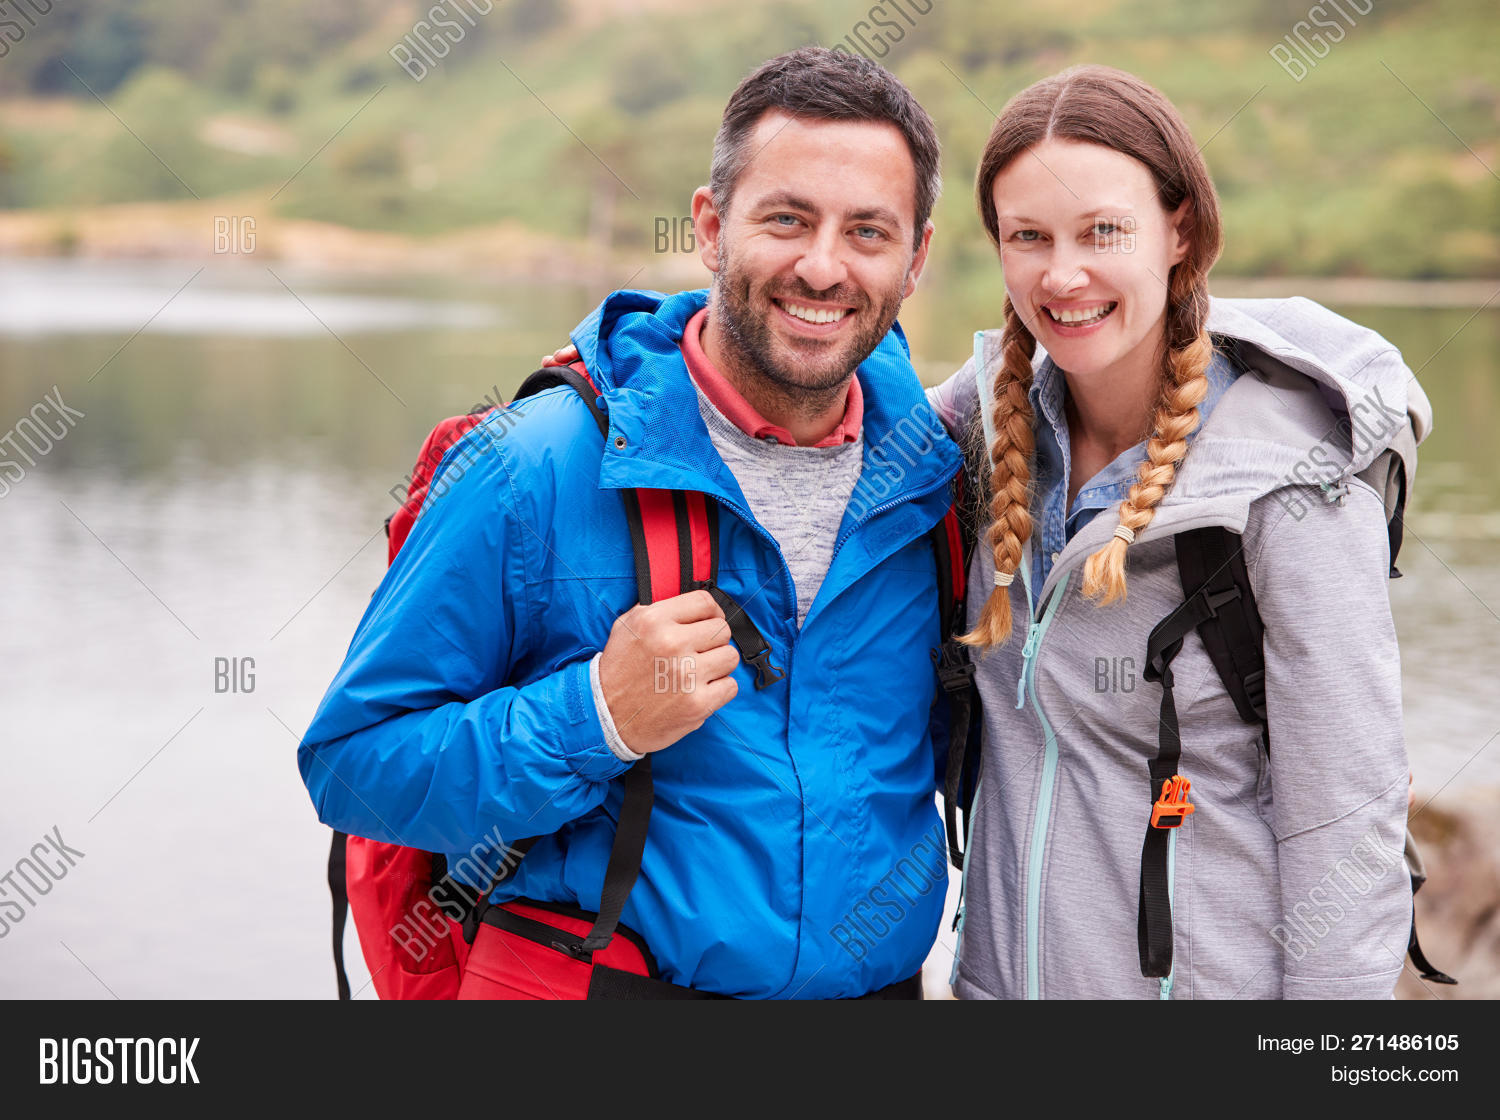 30s,40s,active lifestyle,adults,adventure,arms around,backpacks,bonding,braids,camping trip,casual clothing,caucasian,close up,copy space,countryside,couple,day,embracing,exploring,focus on foreground,free time,front view,getting away from it all,happy,holiday,horizontal,lake,lake district,looking at camera,man,middle aged,millennial,outdoors,smiling,spring,standing,summer,sunlight,the great outdoors,togetherness,tranquility,two people,uk,vacation,waist up,waterproof jacket,woman,young adult